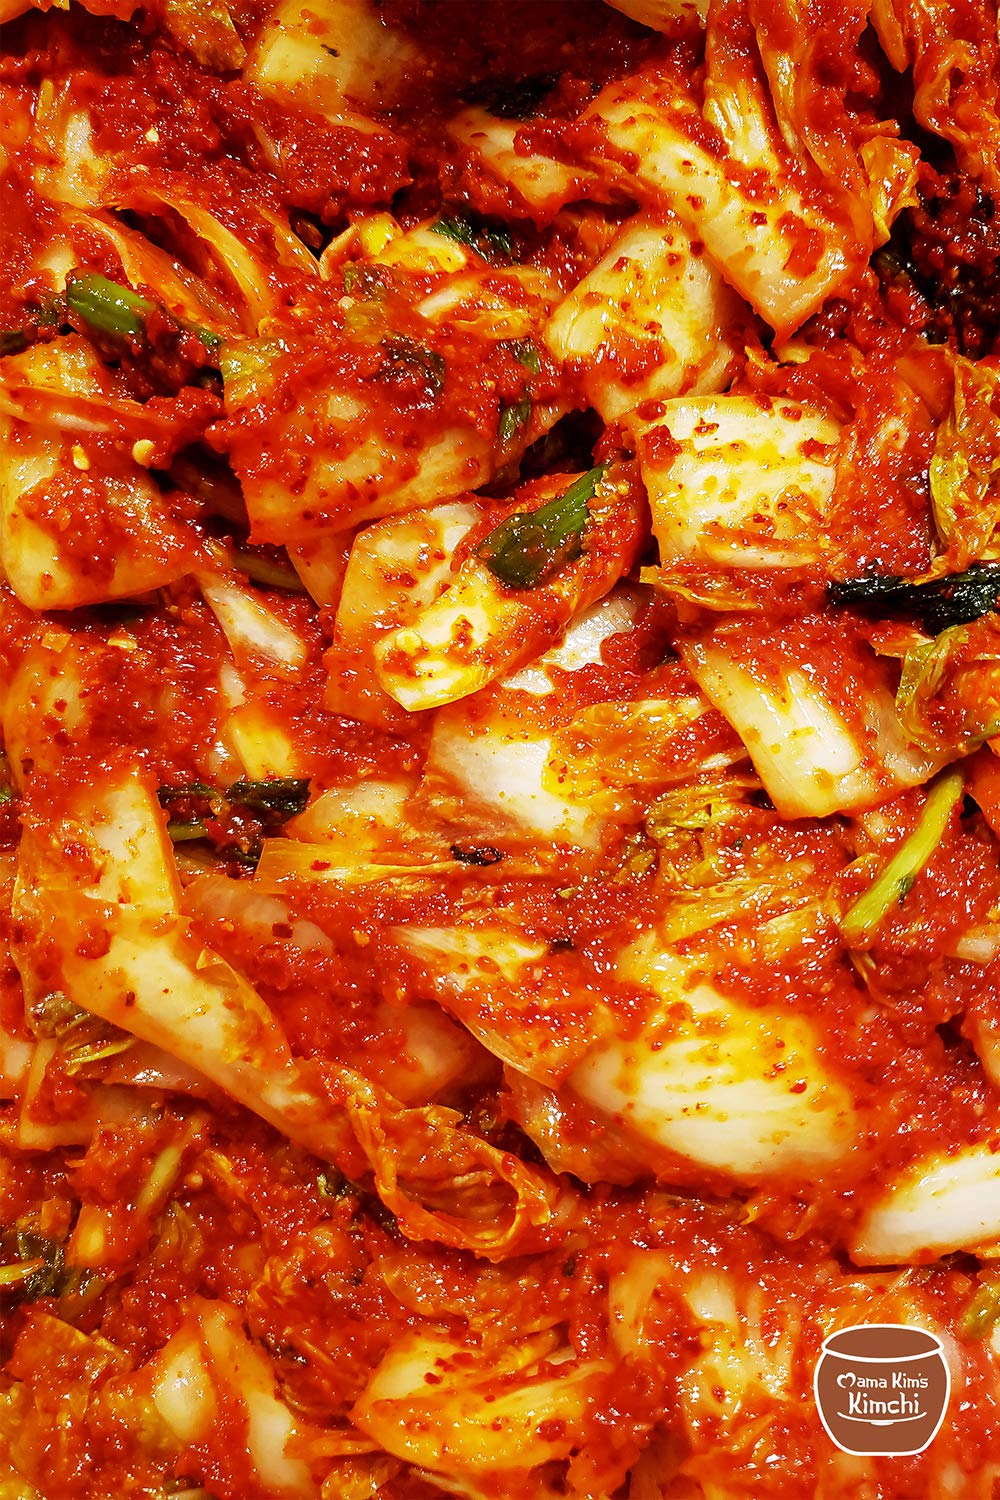 64oz Mama Kim's Kimchi - 2 x Spicy Napa Cabbage Kimchi 32oz Pouch Fresh, Healthy, Natural, Gluten Free, Probiotic, Authentic Korean 81Wwz5mfzxL